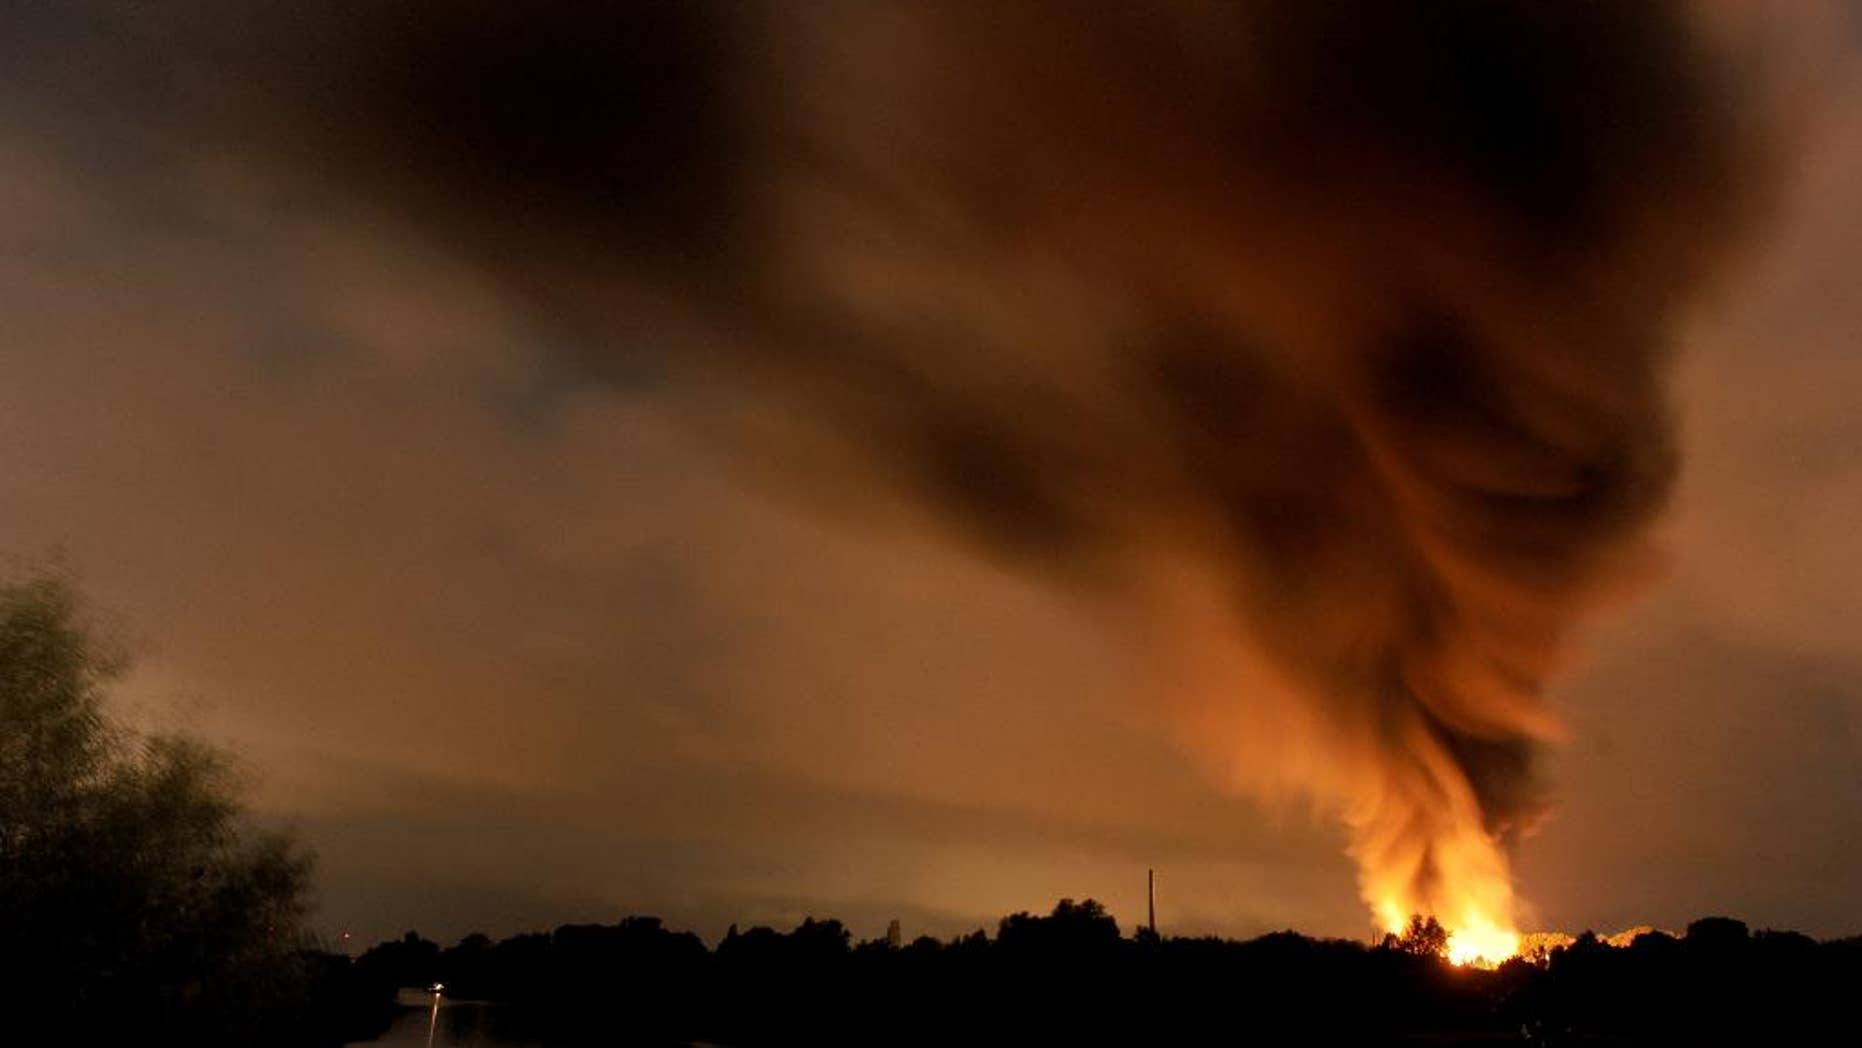 Smoke and flames rise over a chemical waste facility in Ritterhude near Bremen, Tuesday evening, Sept. 9, 2014.  Police said that one person was severely burned in the blast Tuesday night and that the explosion damaged a nearby residential area.  (AP Photo/dpa, Ingo Wagner)